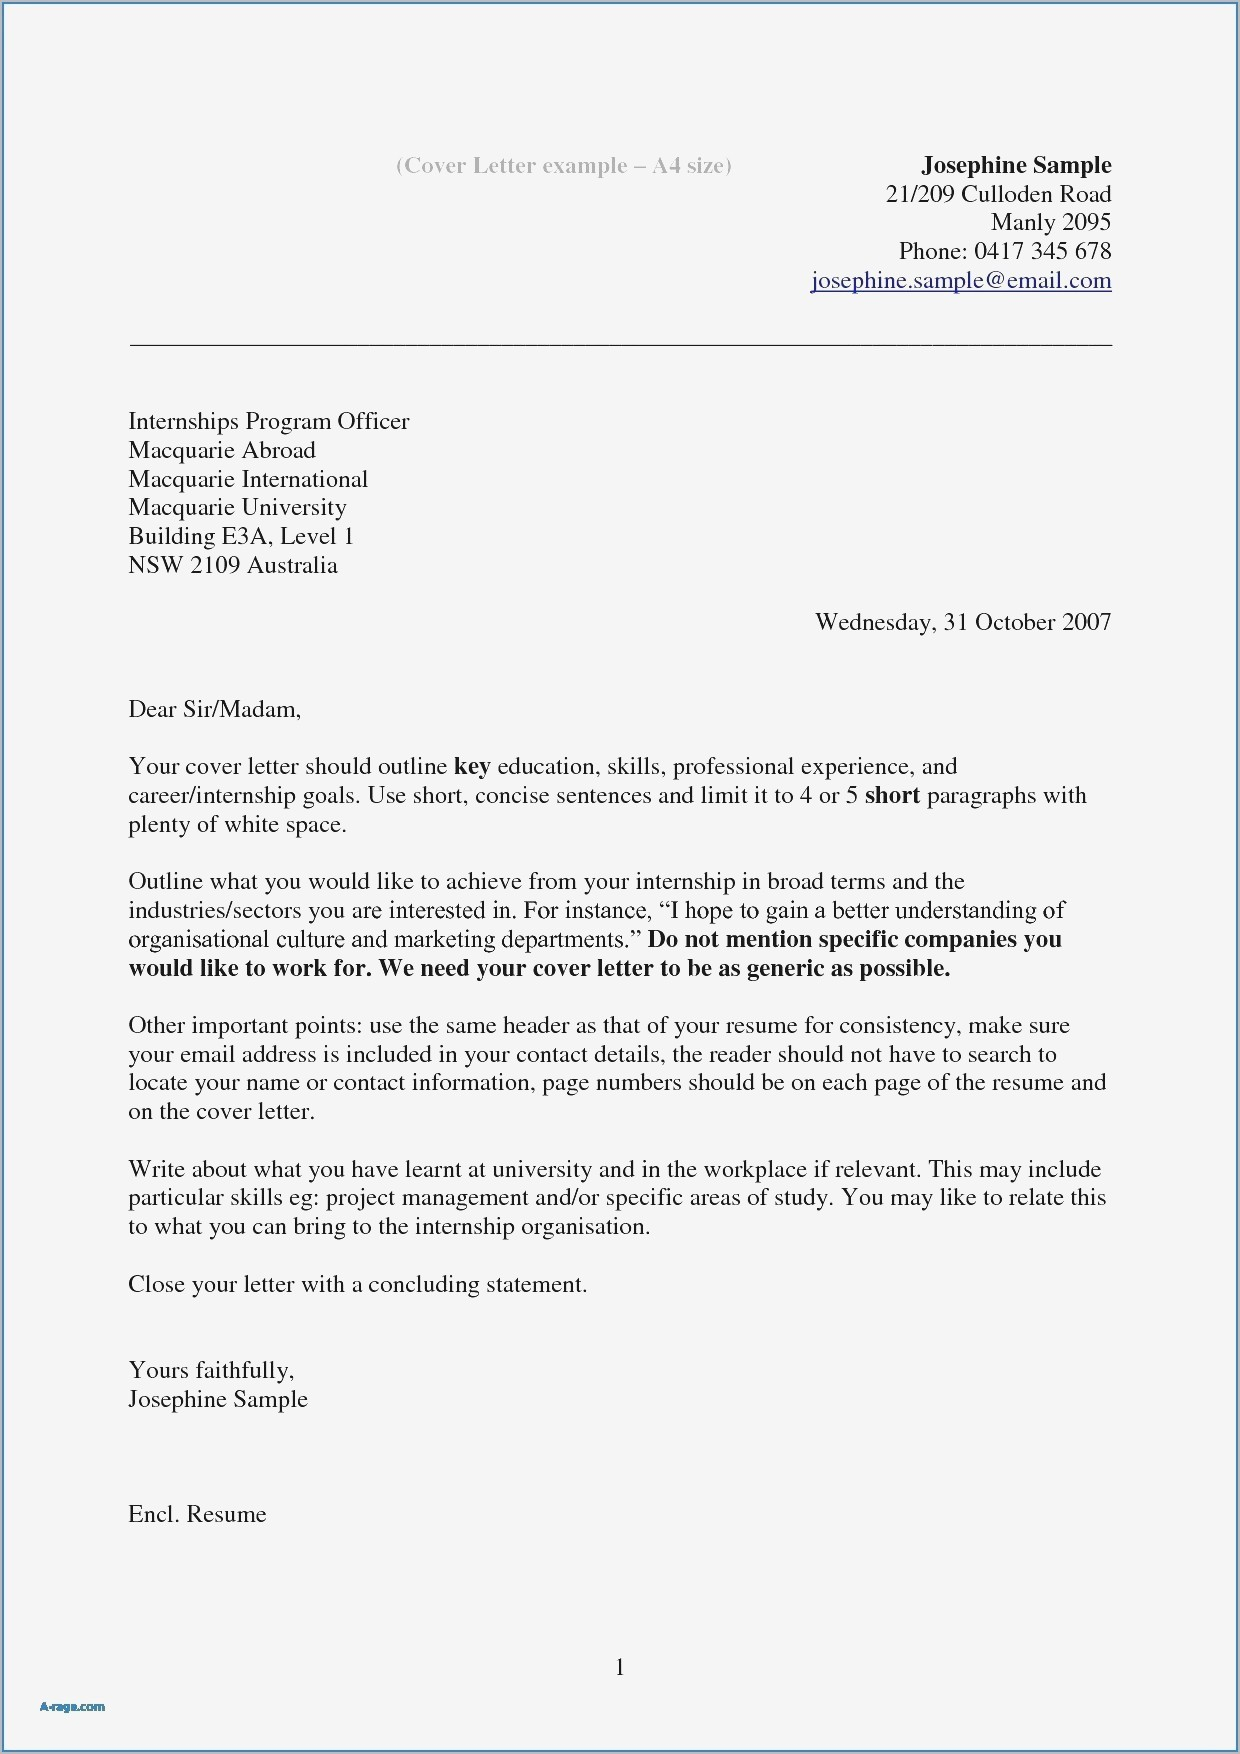 Electronic Cover Letter Template - Cover Letter for Pany Not Hiring